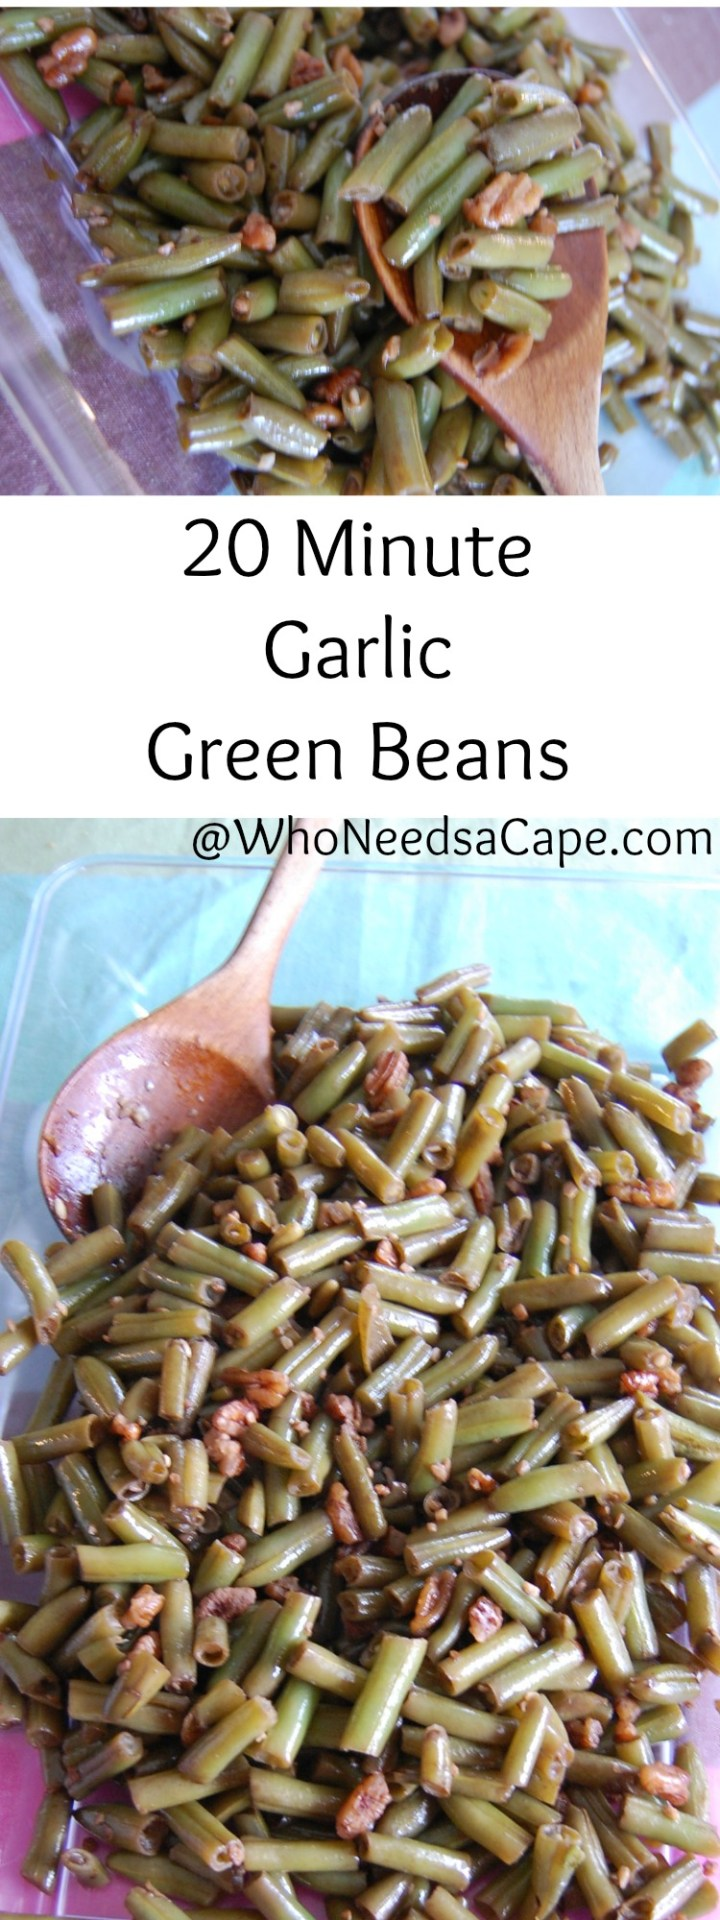 20 Minute Garlic Green Beans are a great side for those busy week nights. Tasty and good for you - a must pin!